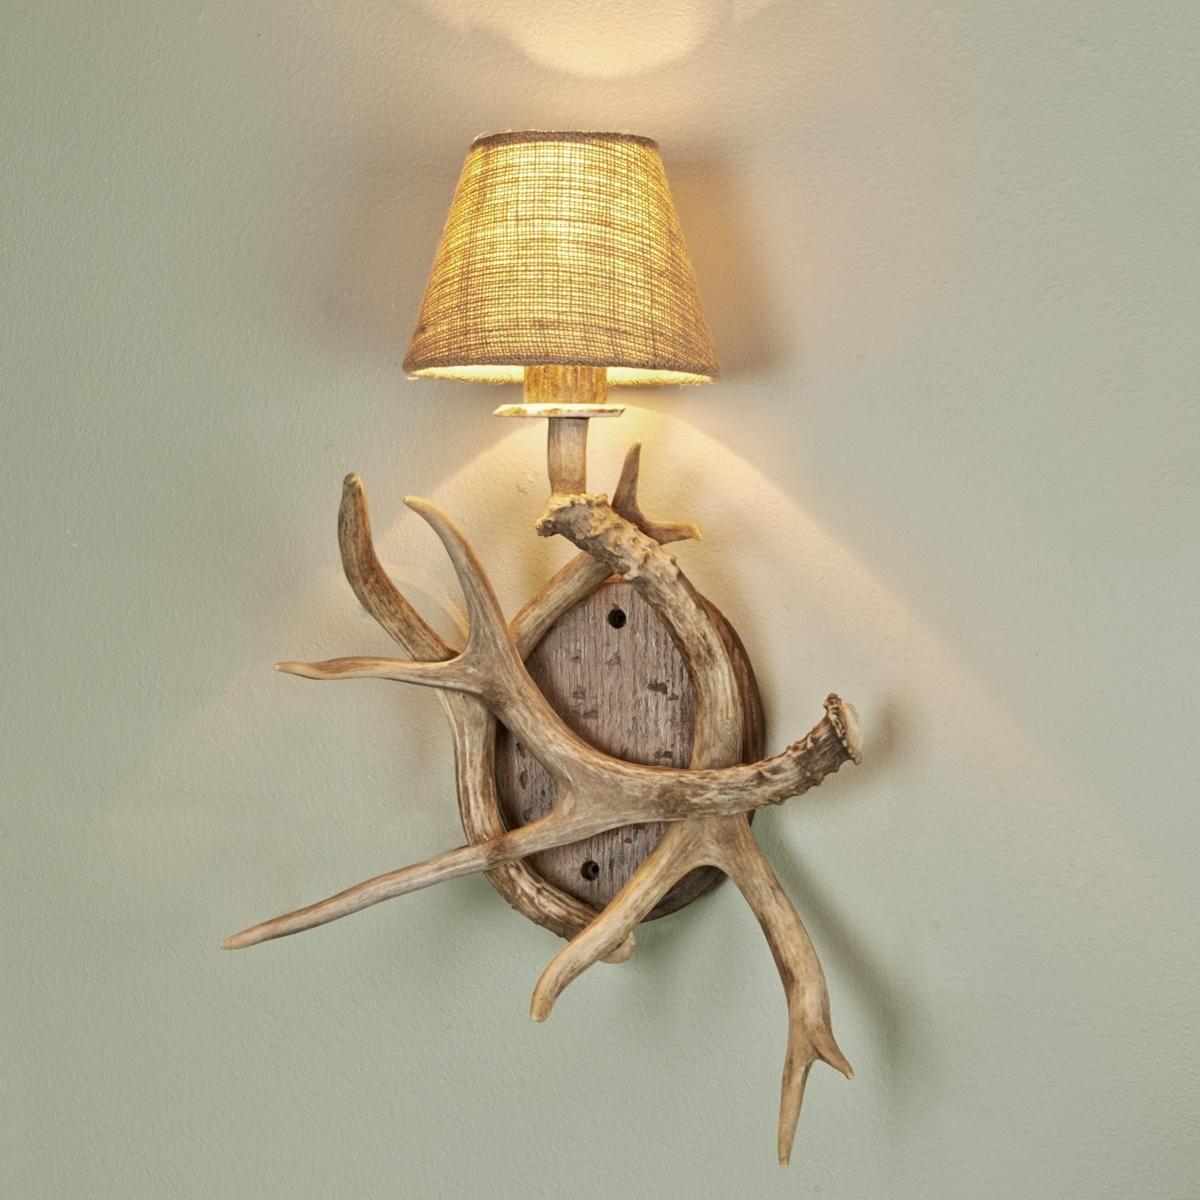 Whitetail Deer Antler Wall Sconce This 1 Light Made In The Mountains Of Texas By Hand Is Real Thing With A Beauty